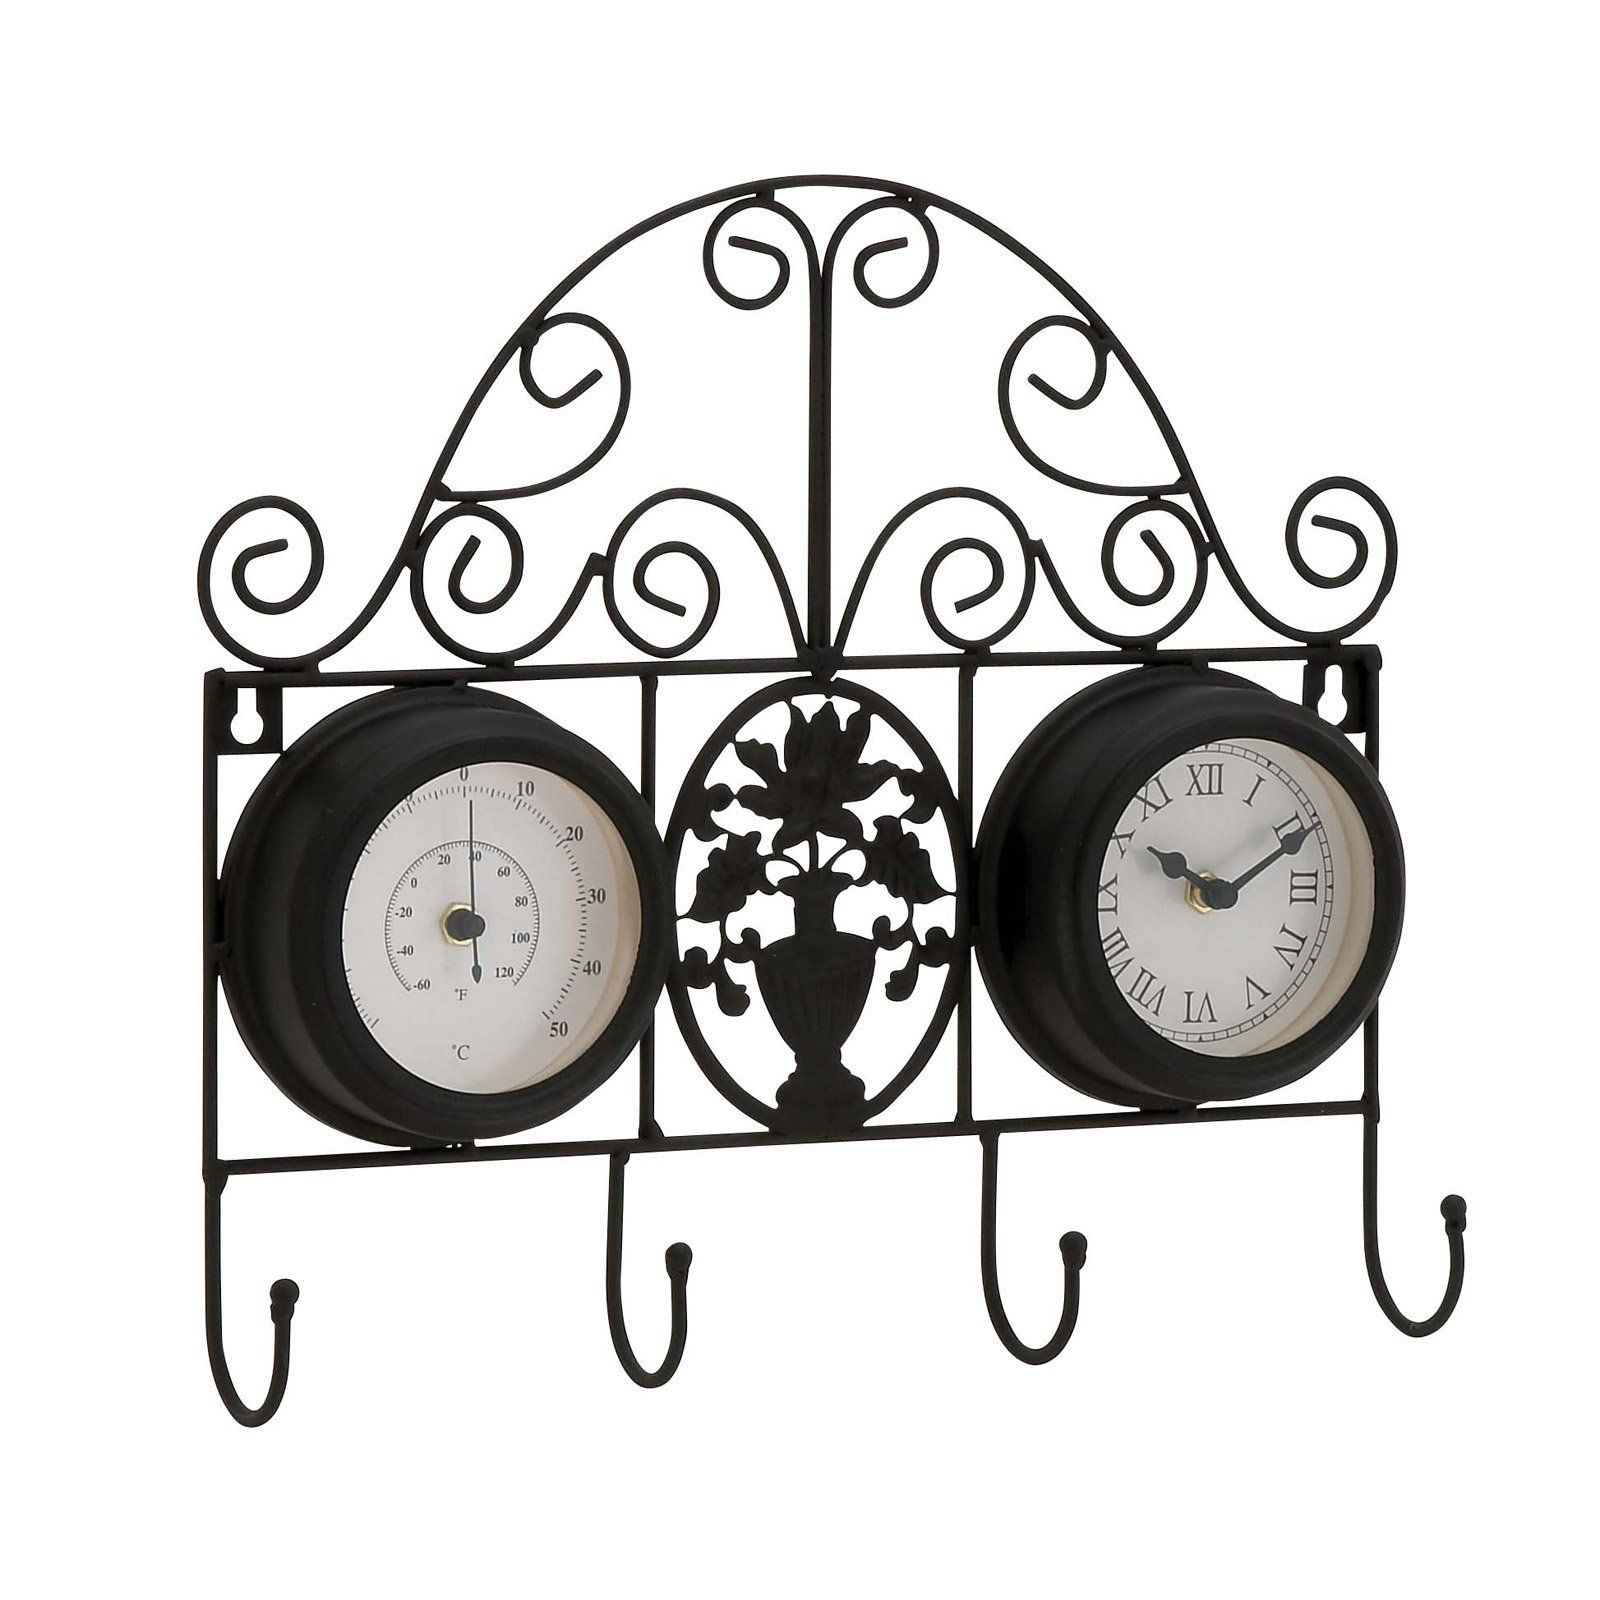 Decmode scrolled metal wall clock and thermometer with coat hooks